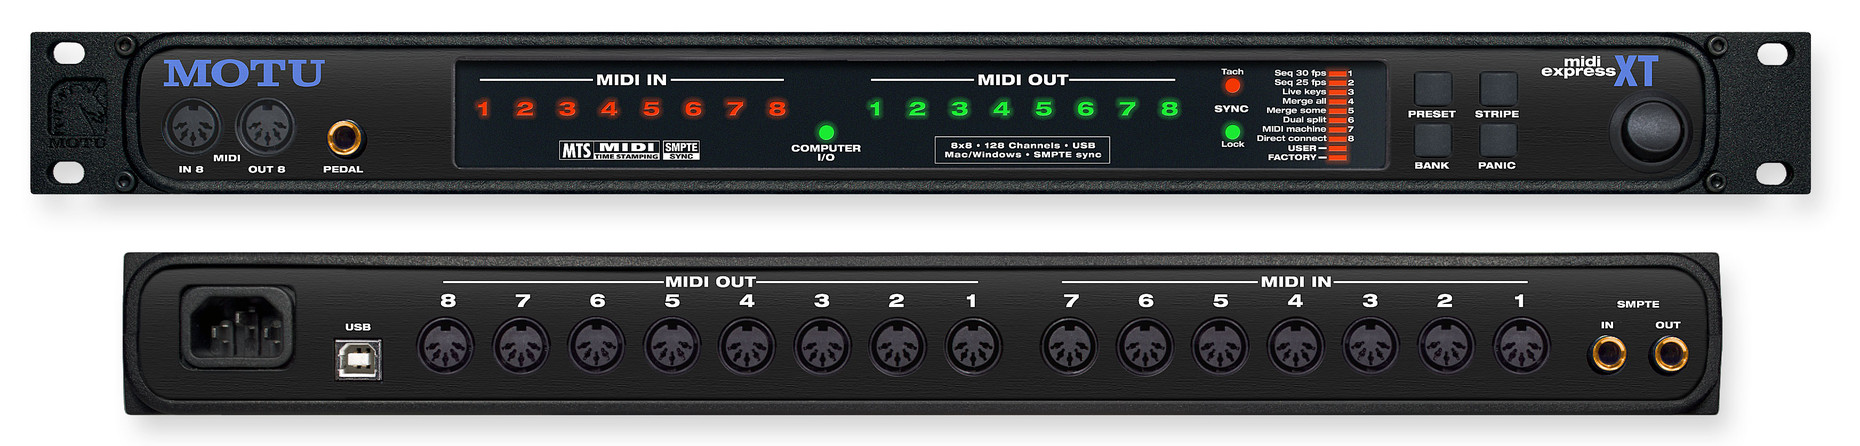 motu midi express xt 128 channel usb midi interface. Black Bedroom Furniture Sets. Home Design Ideas